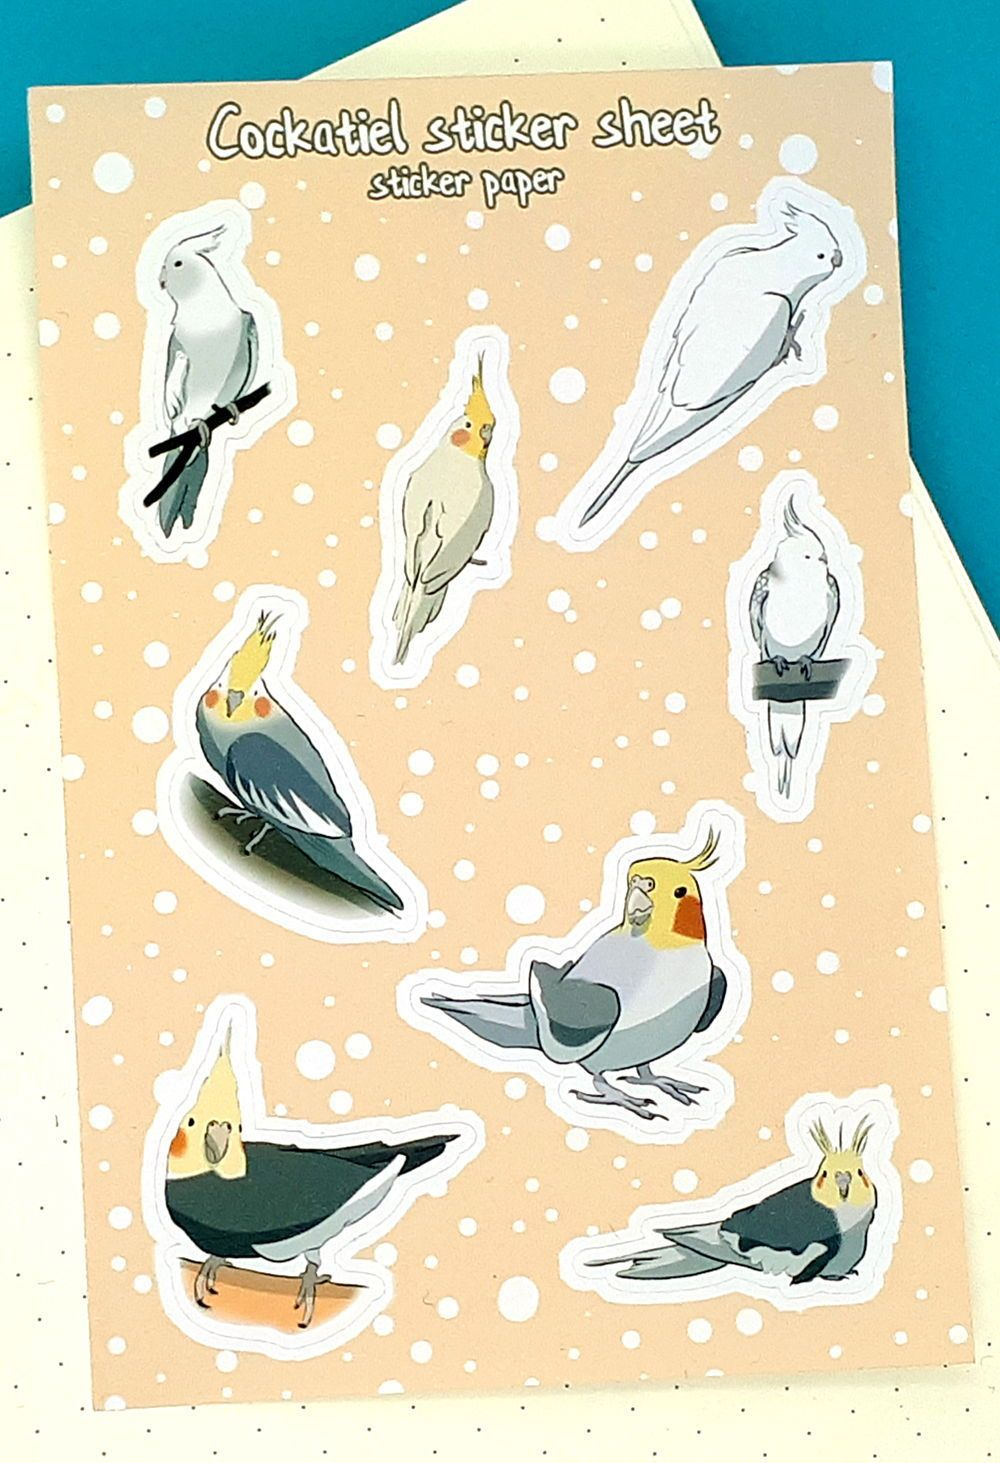 8 charming vinyl cockatiel stickers for your bullet journal | Etsy